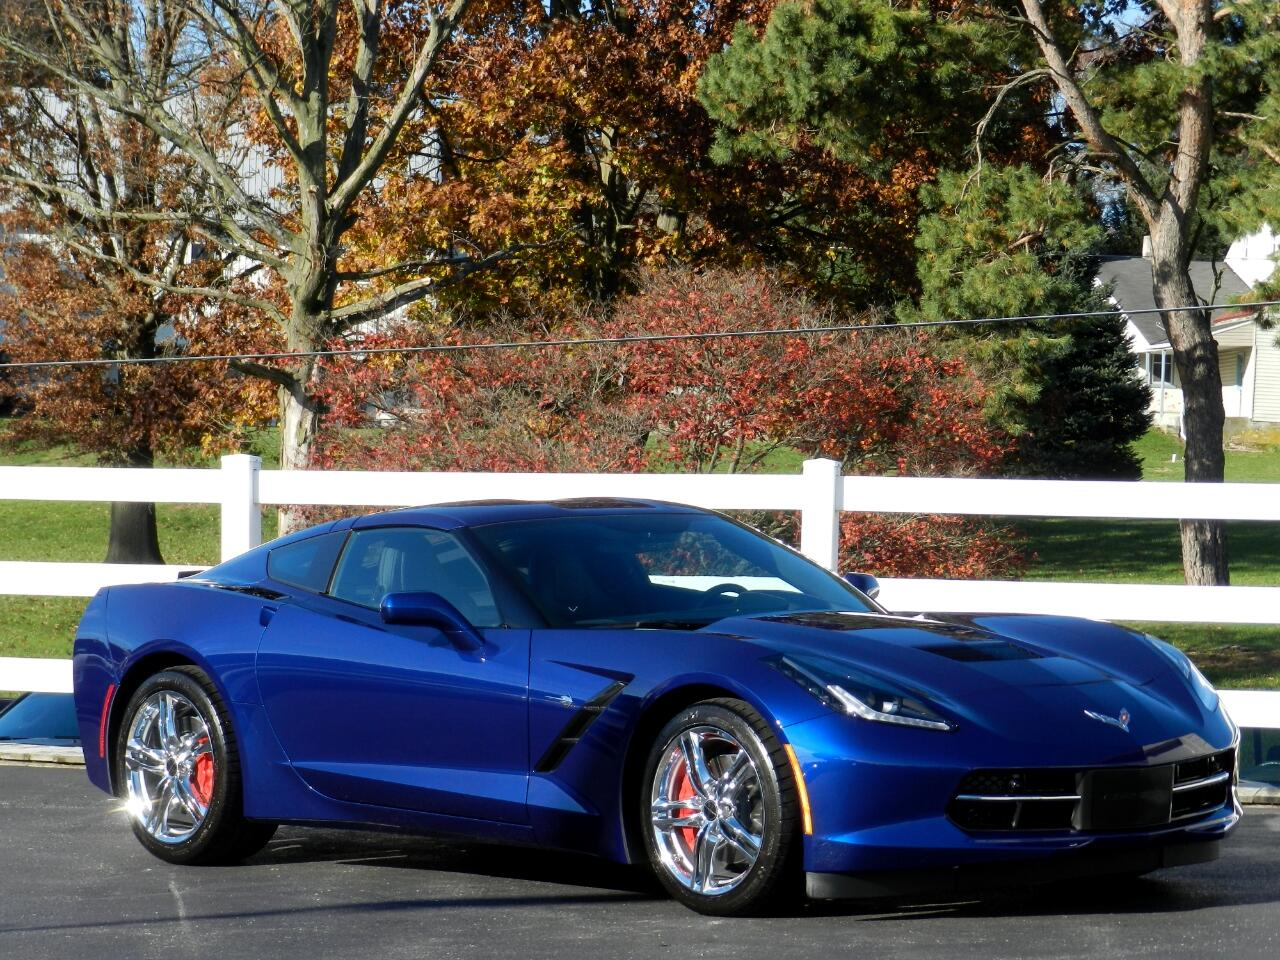 2017 Chevrolet Corvette Stingray 2LT Coupe Automatic